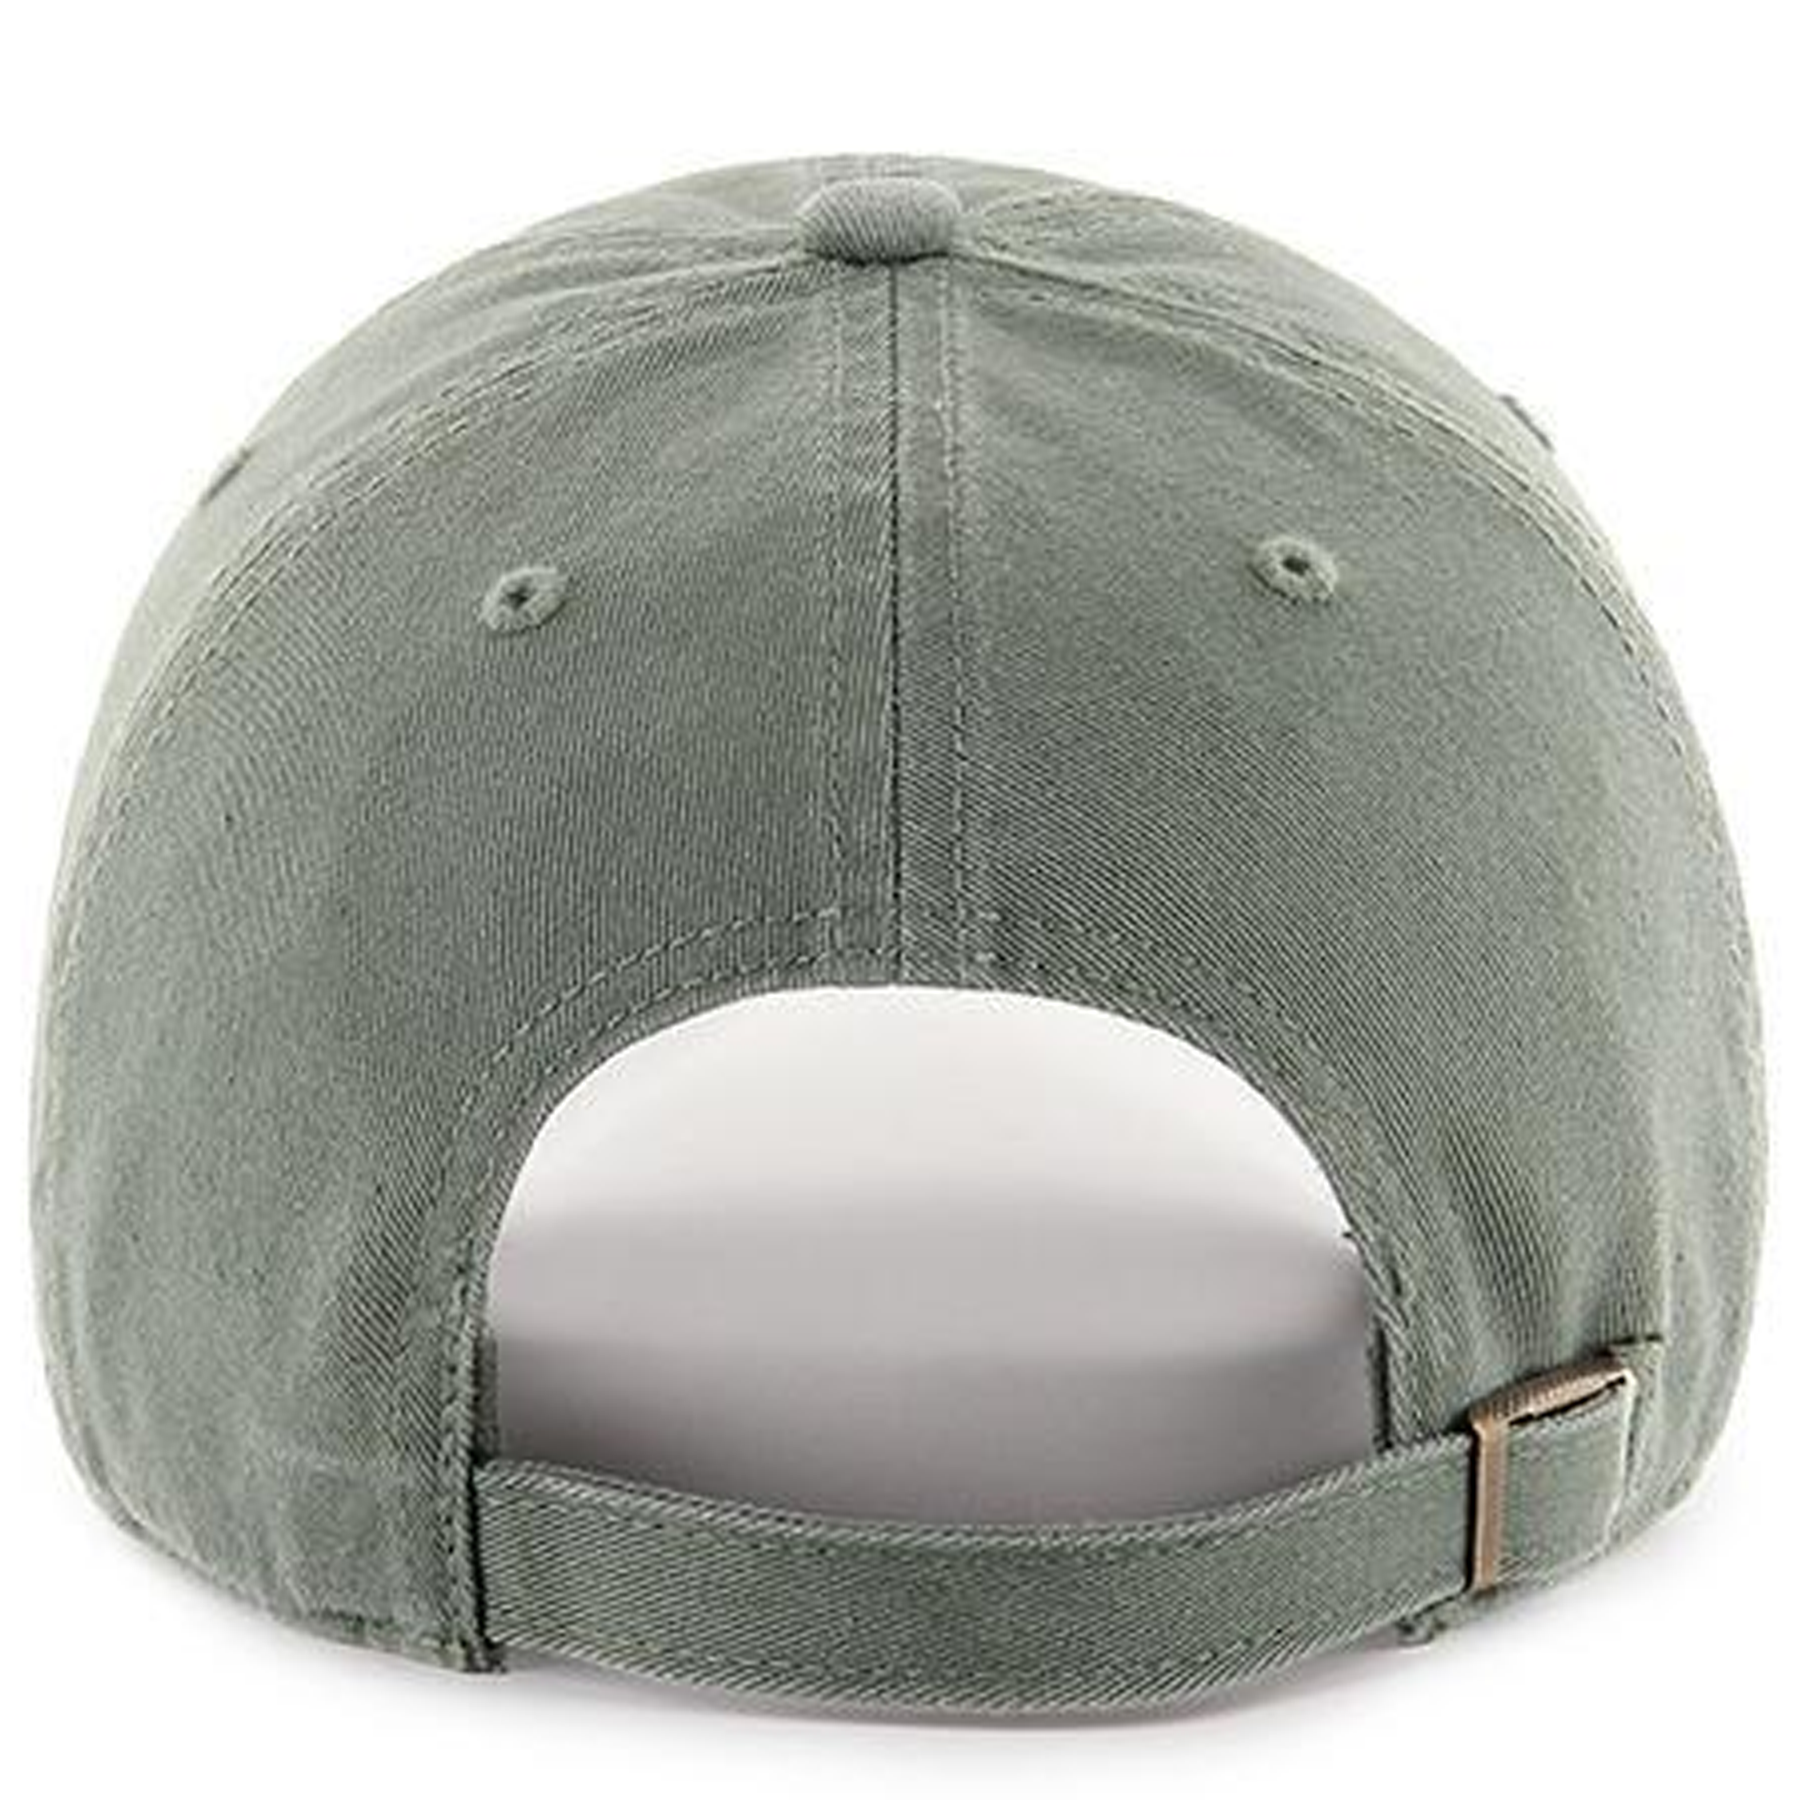 ... australia the back of the new york mets olive womens dad hat is an  olive green 7430b1c209